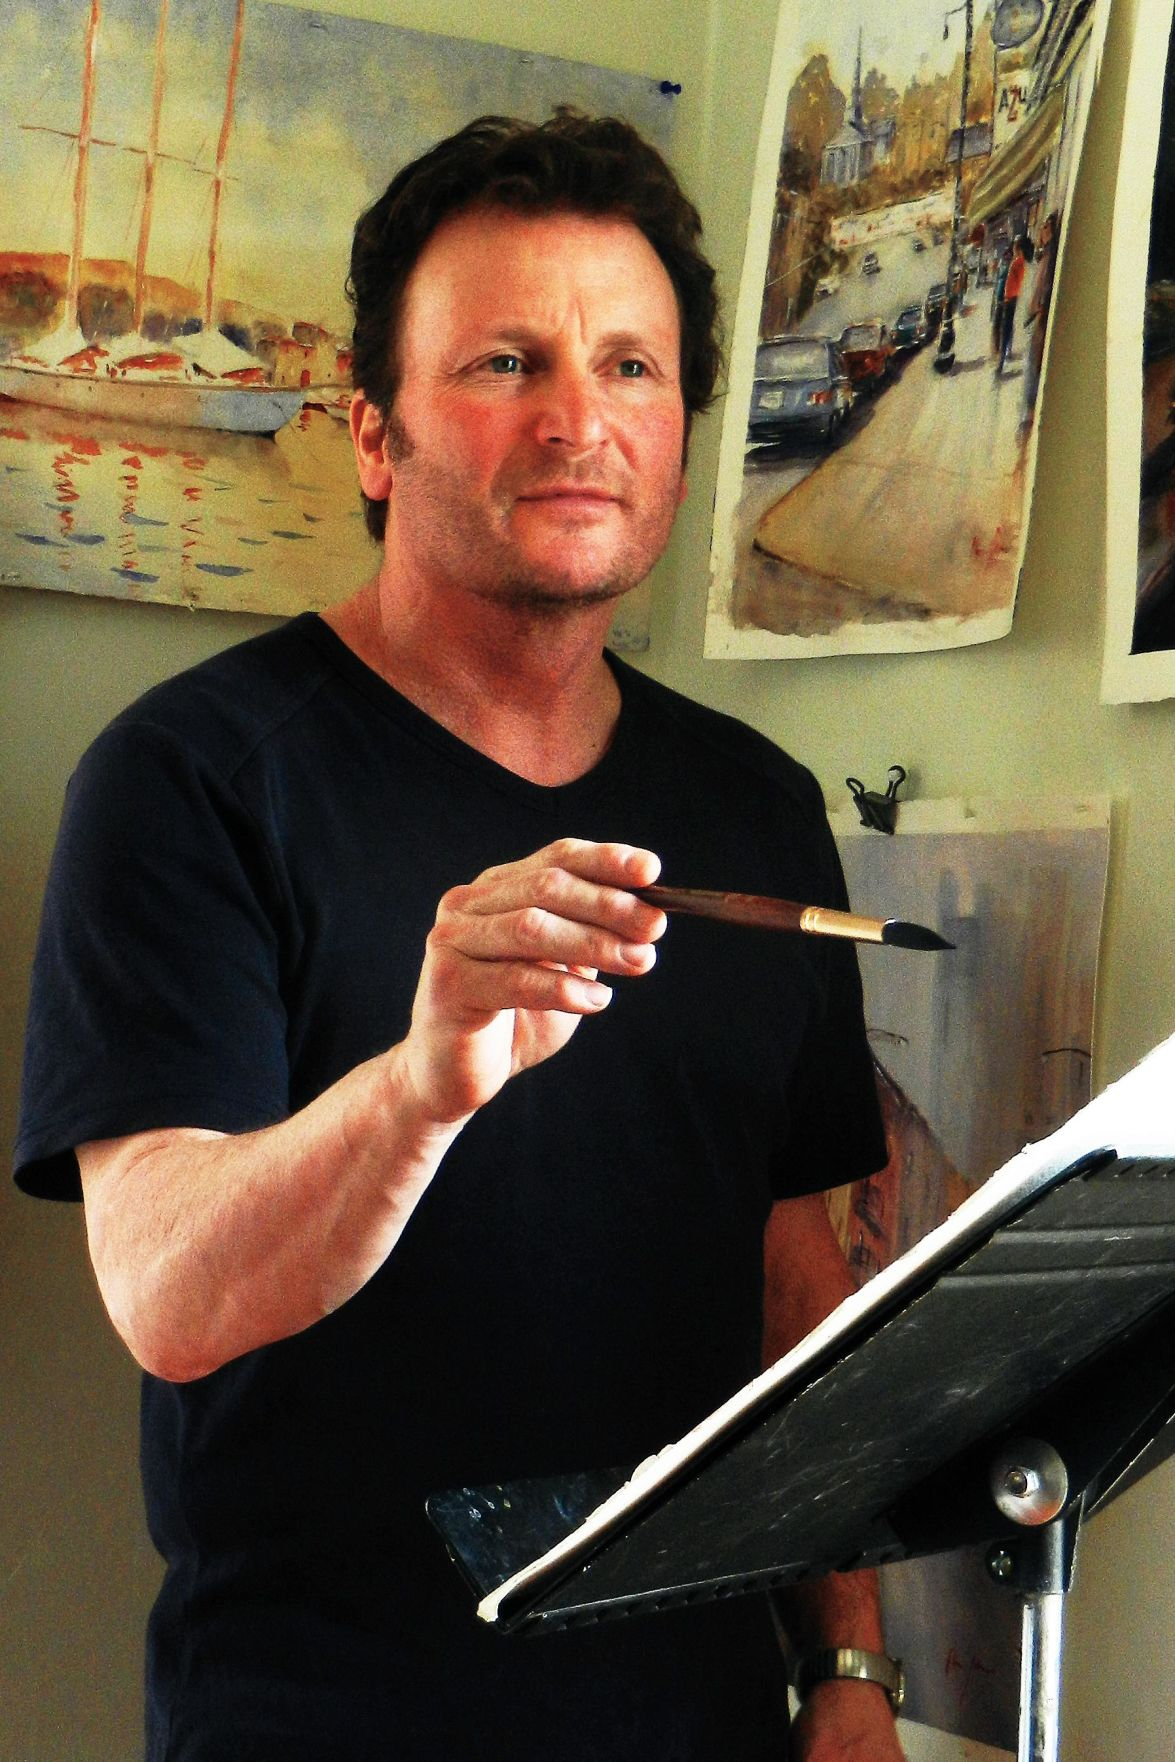 Deep River watercolorist among 6 American artists to be featured on Aussie TV show